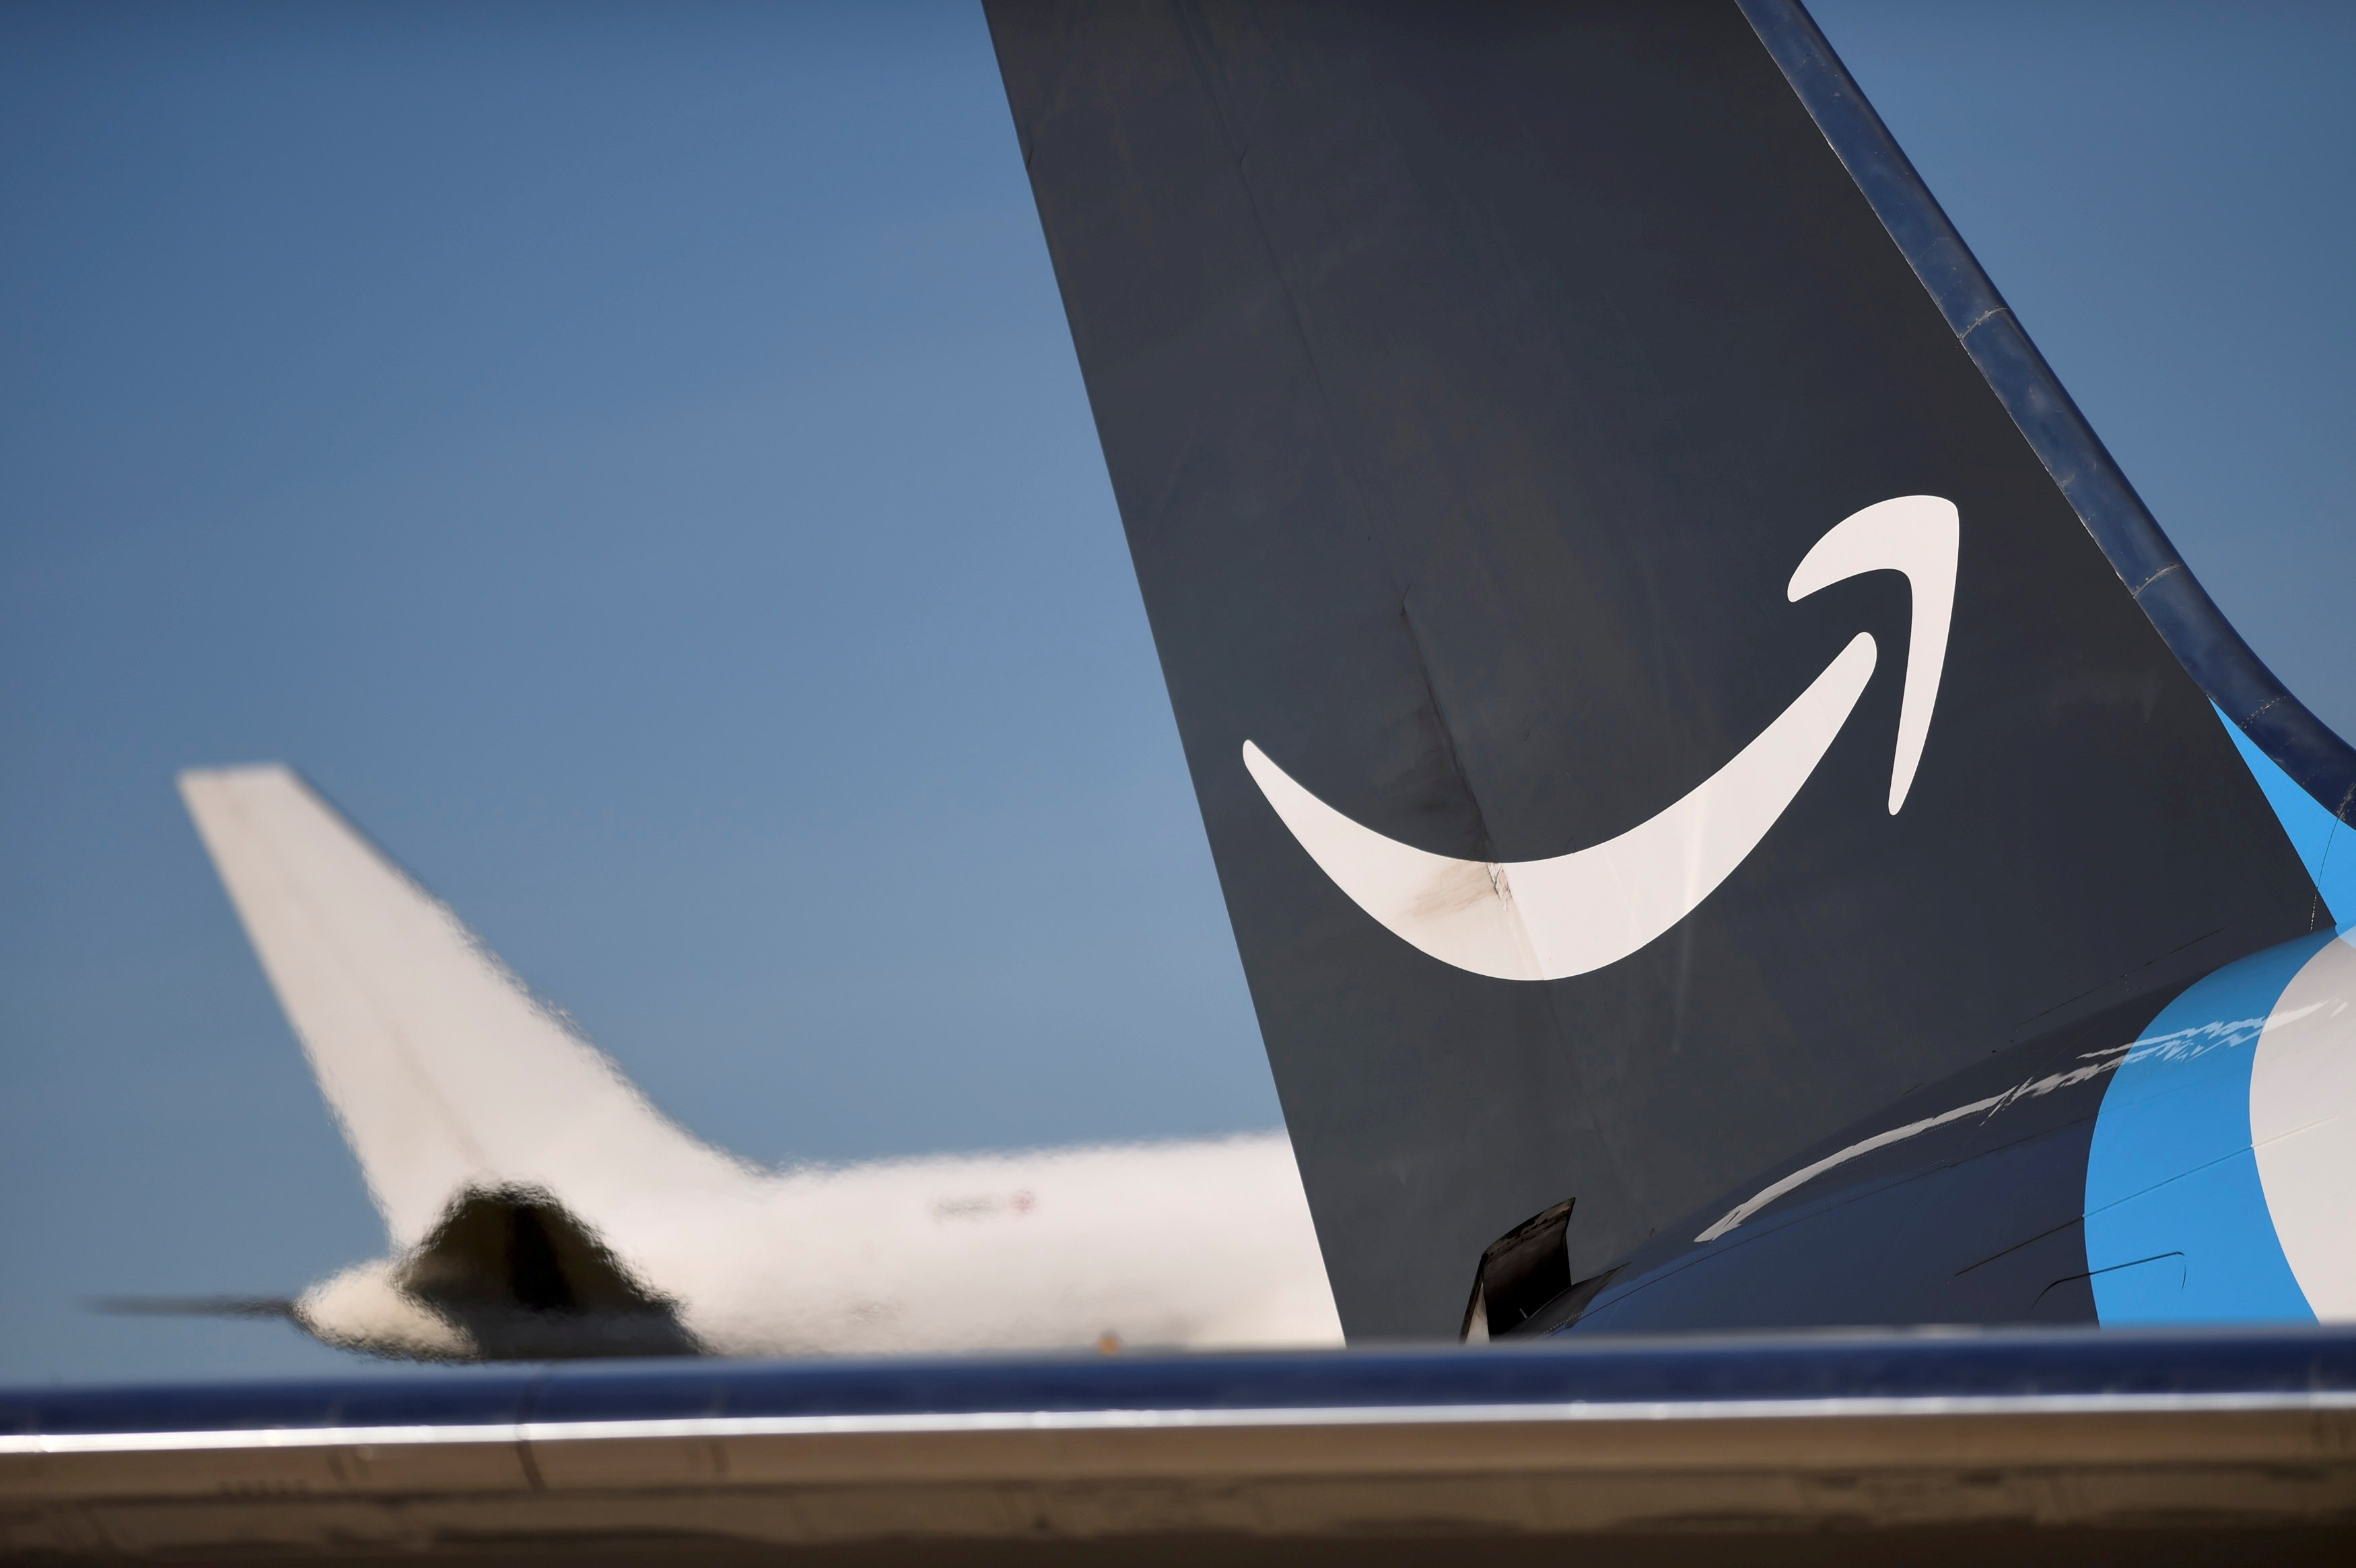 Amazon plans more than 200 daily flights from new cargo hub